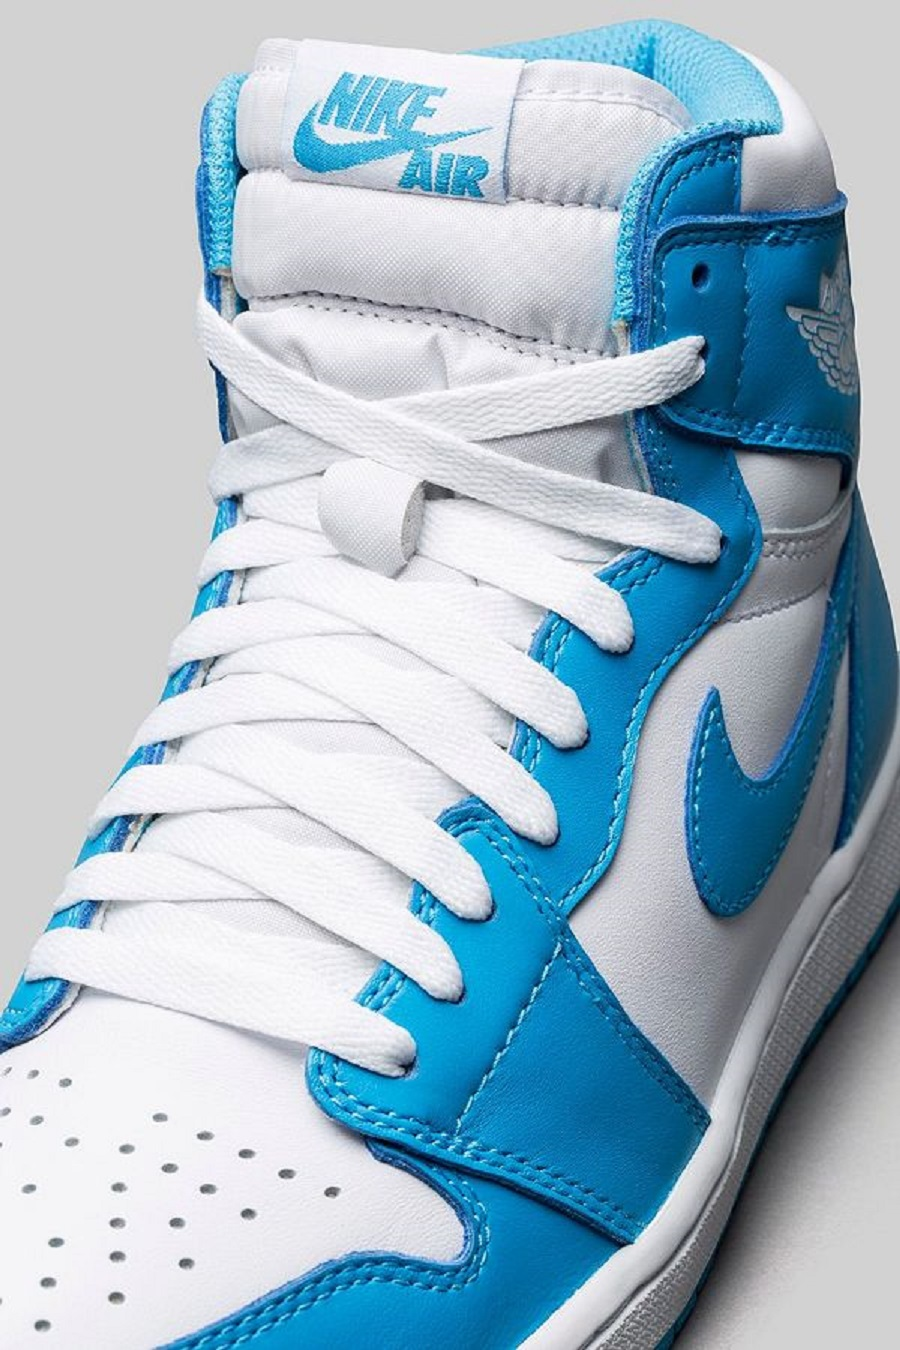 k-Air-Jordan-1-Retro-High-OG-UNC-Official-Images-Release-Info-5